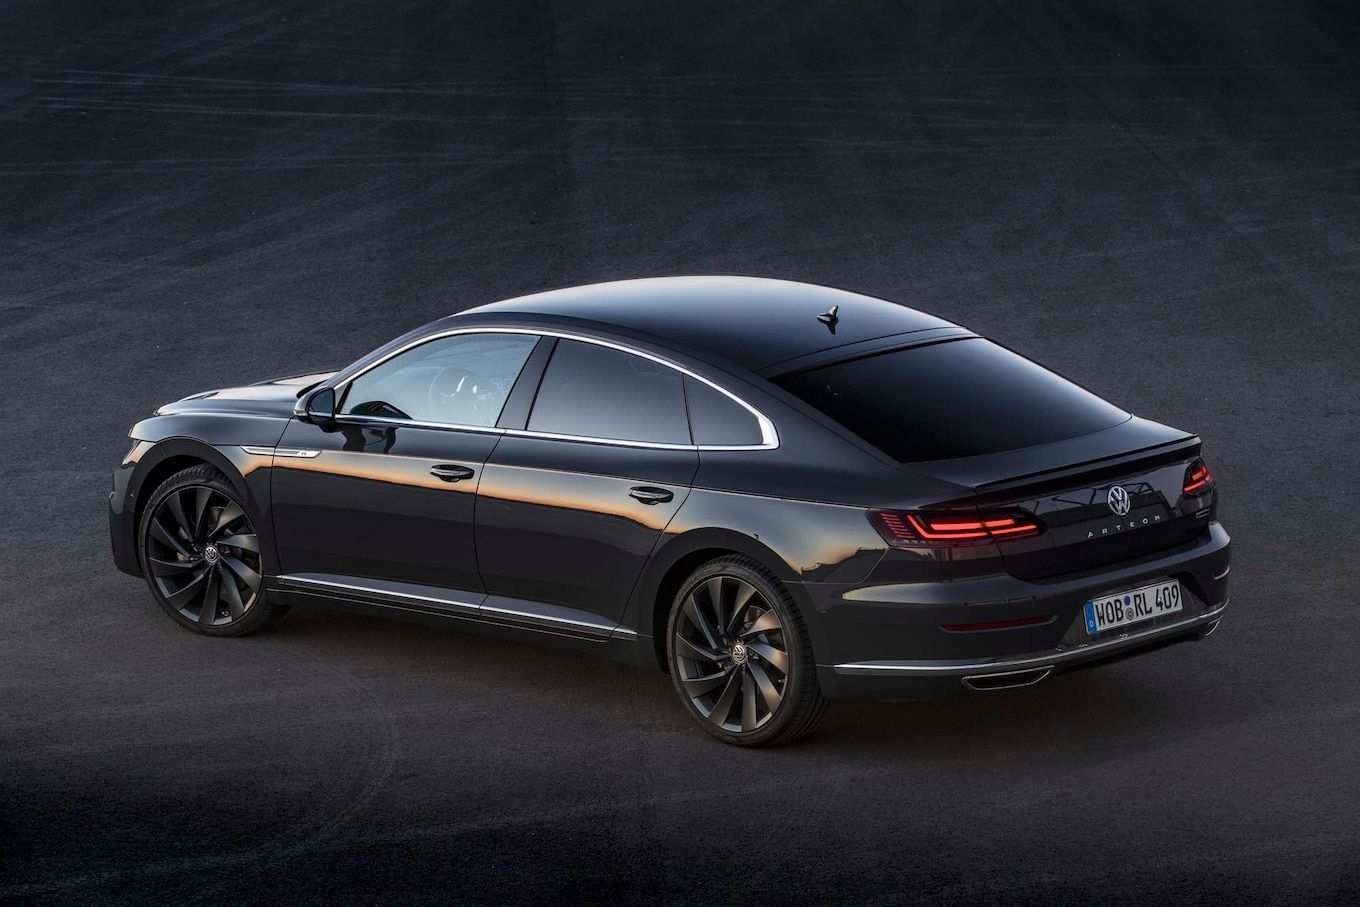 75 All New Volkswagen R Line 2019 Redesign And Concept Picture by Volkswagen R Line 2019 Redesign And Concept